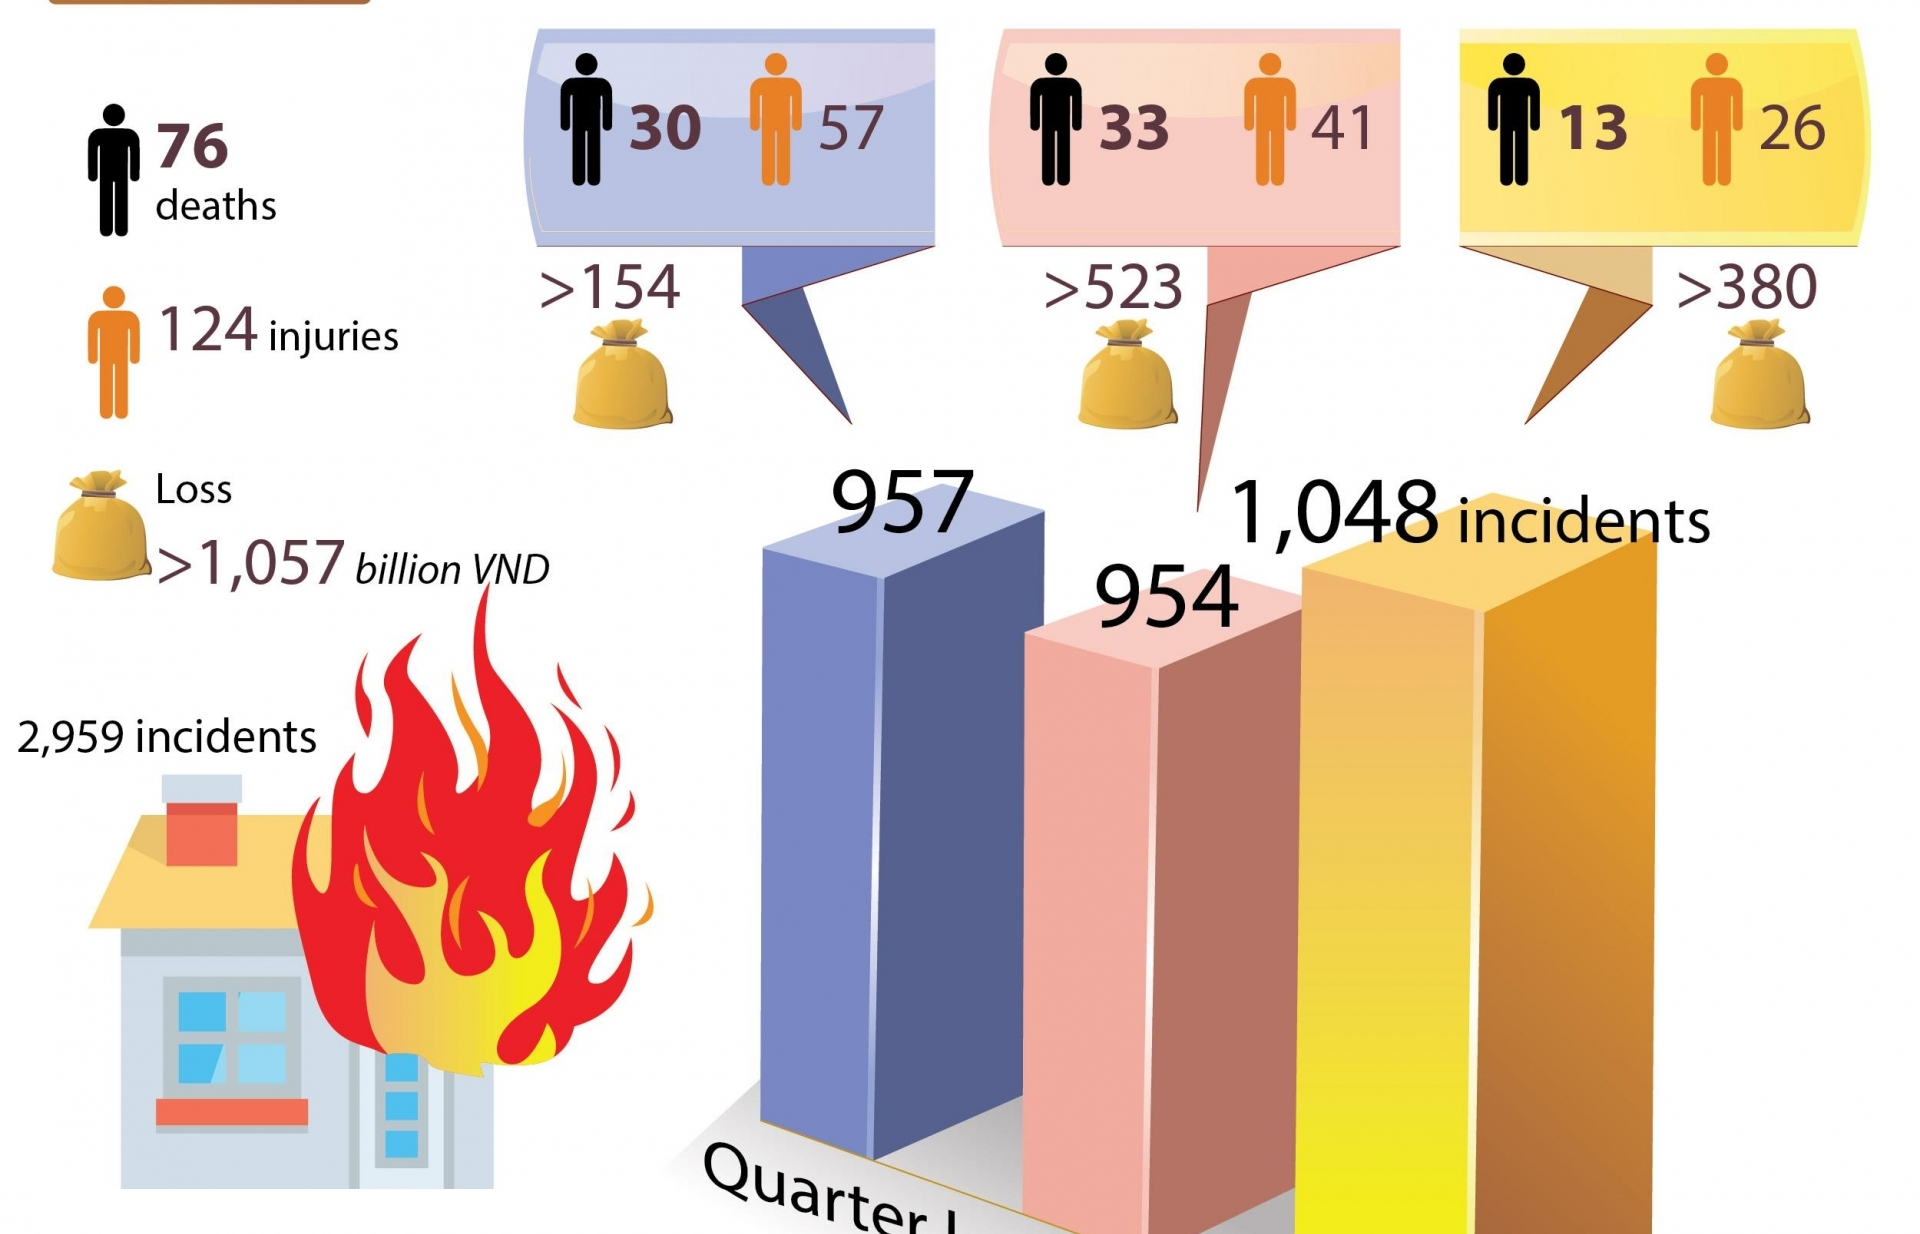 Nearly 3,000 fire, explosion incidents nationwide